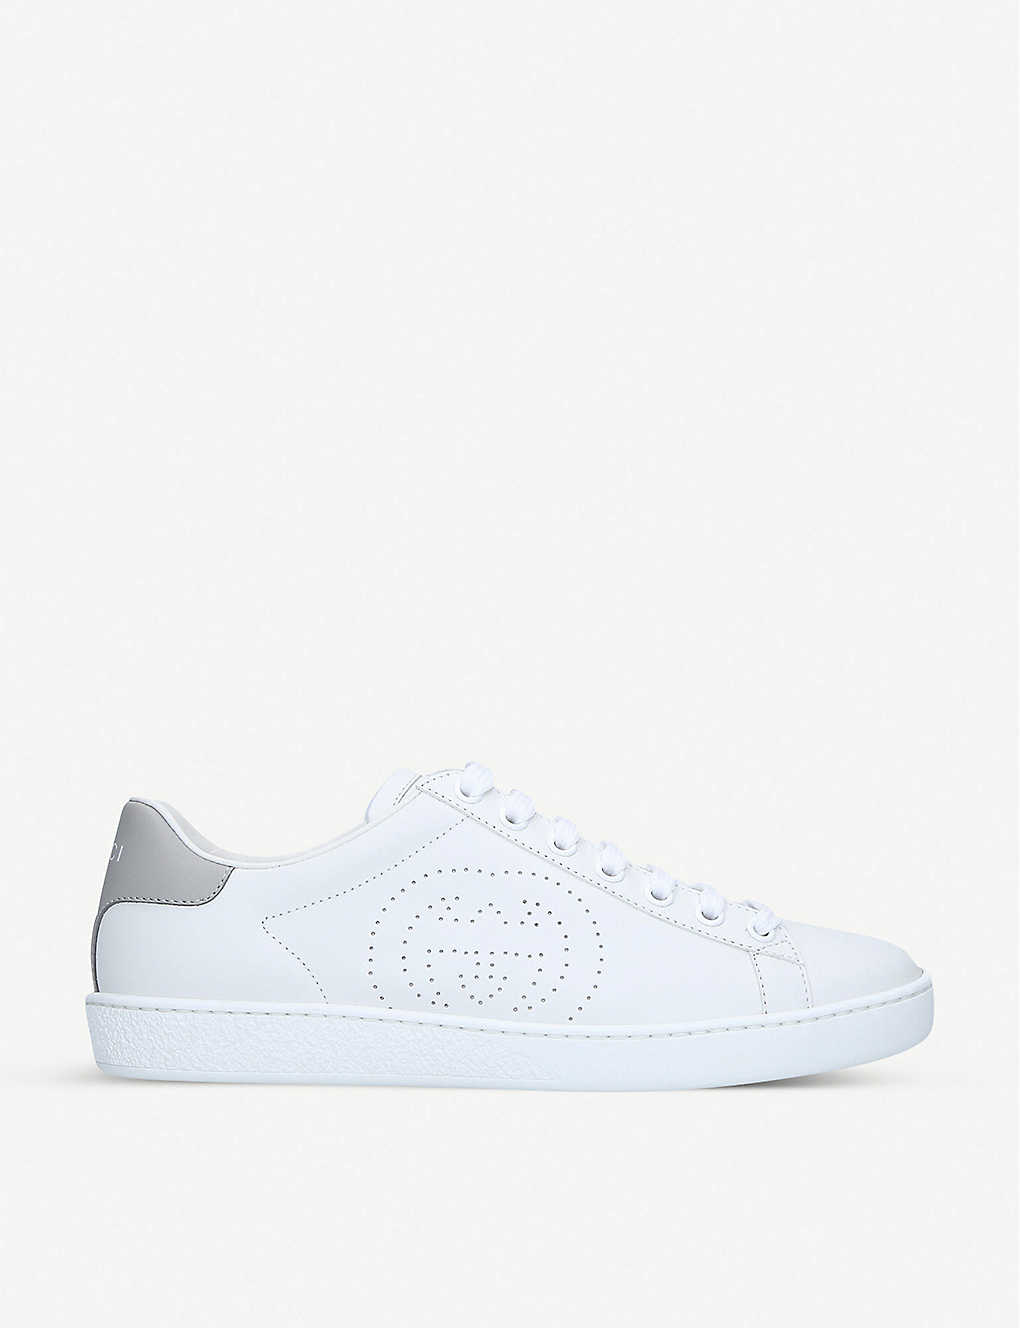 GUCCI: New Ace interlocking-G leather trainers